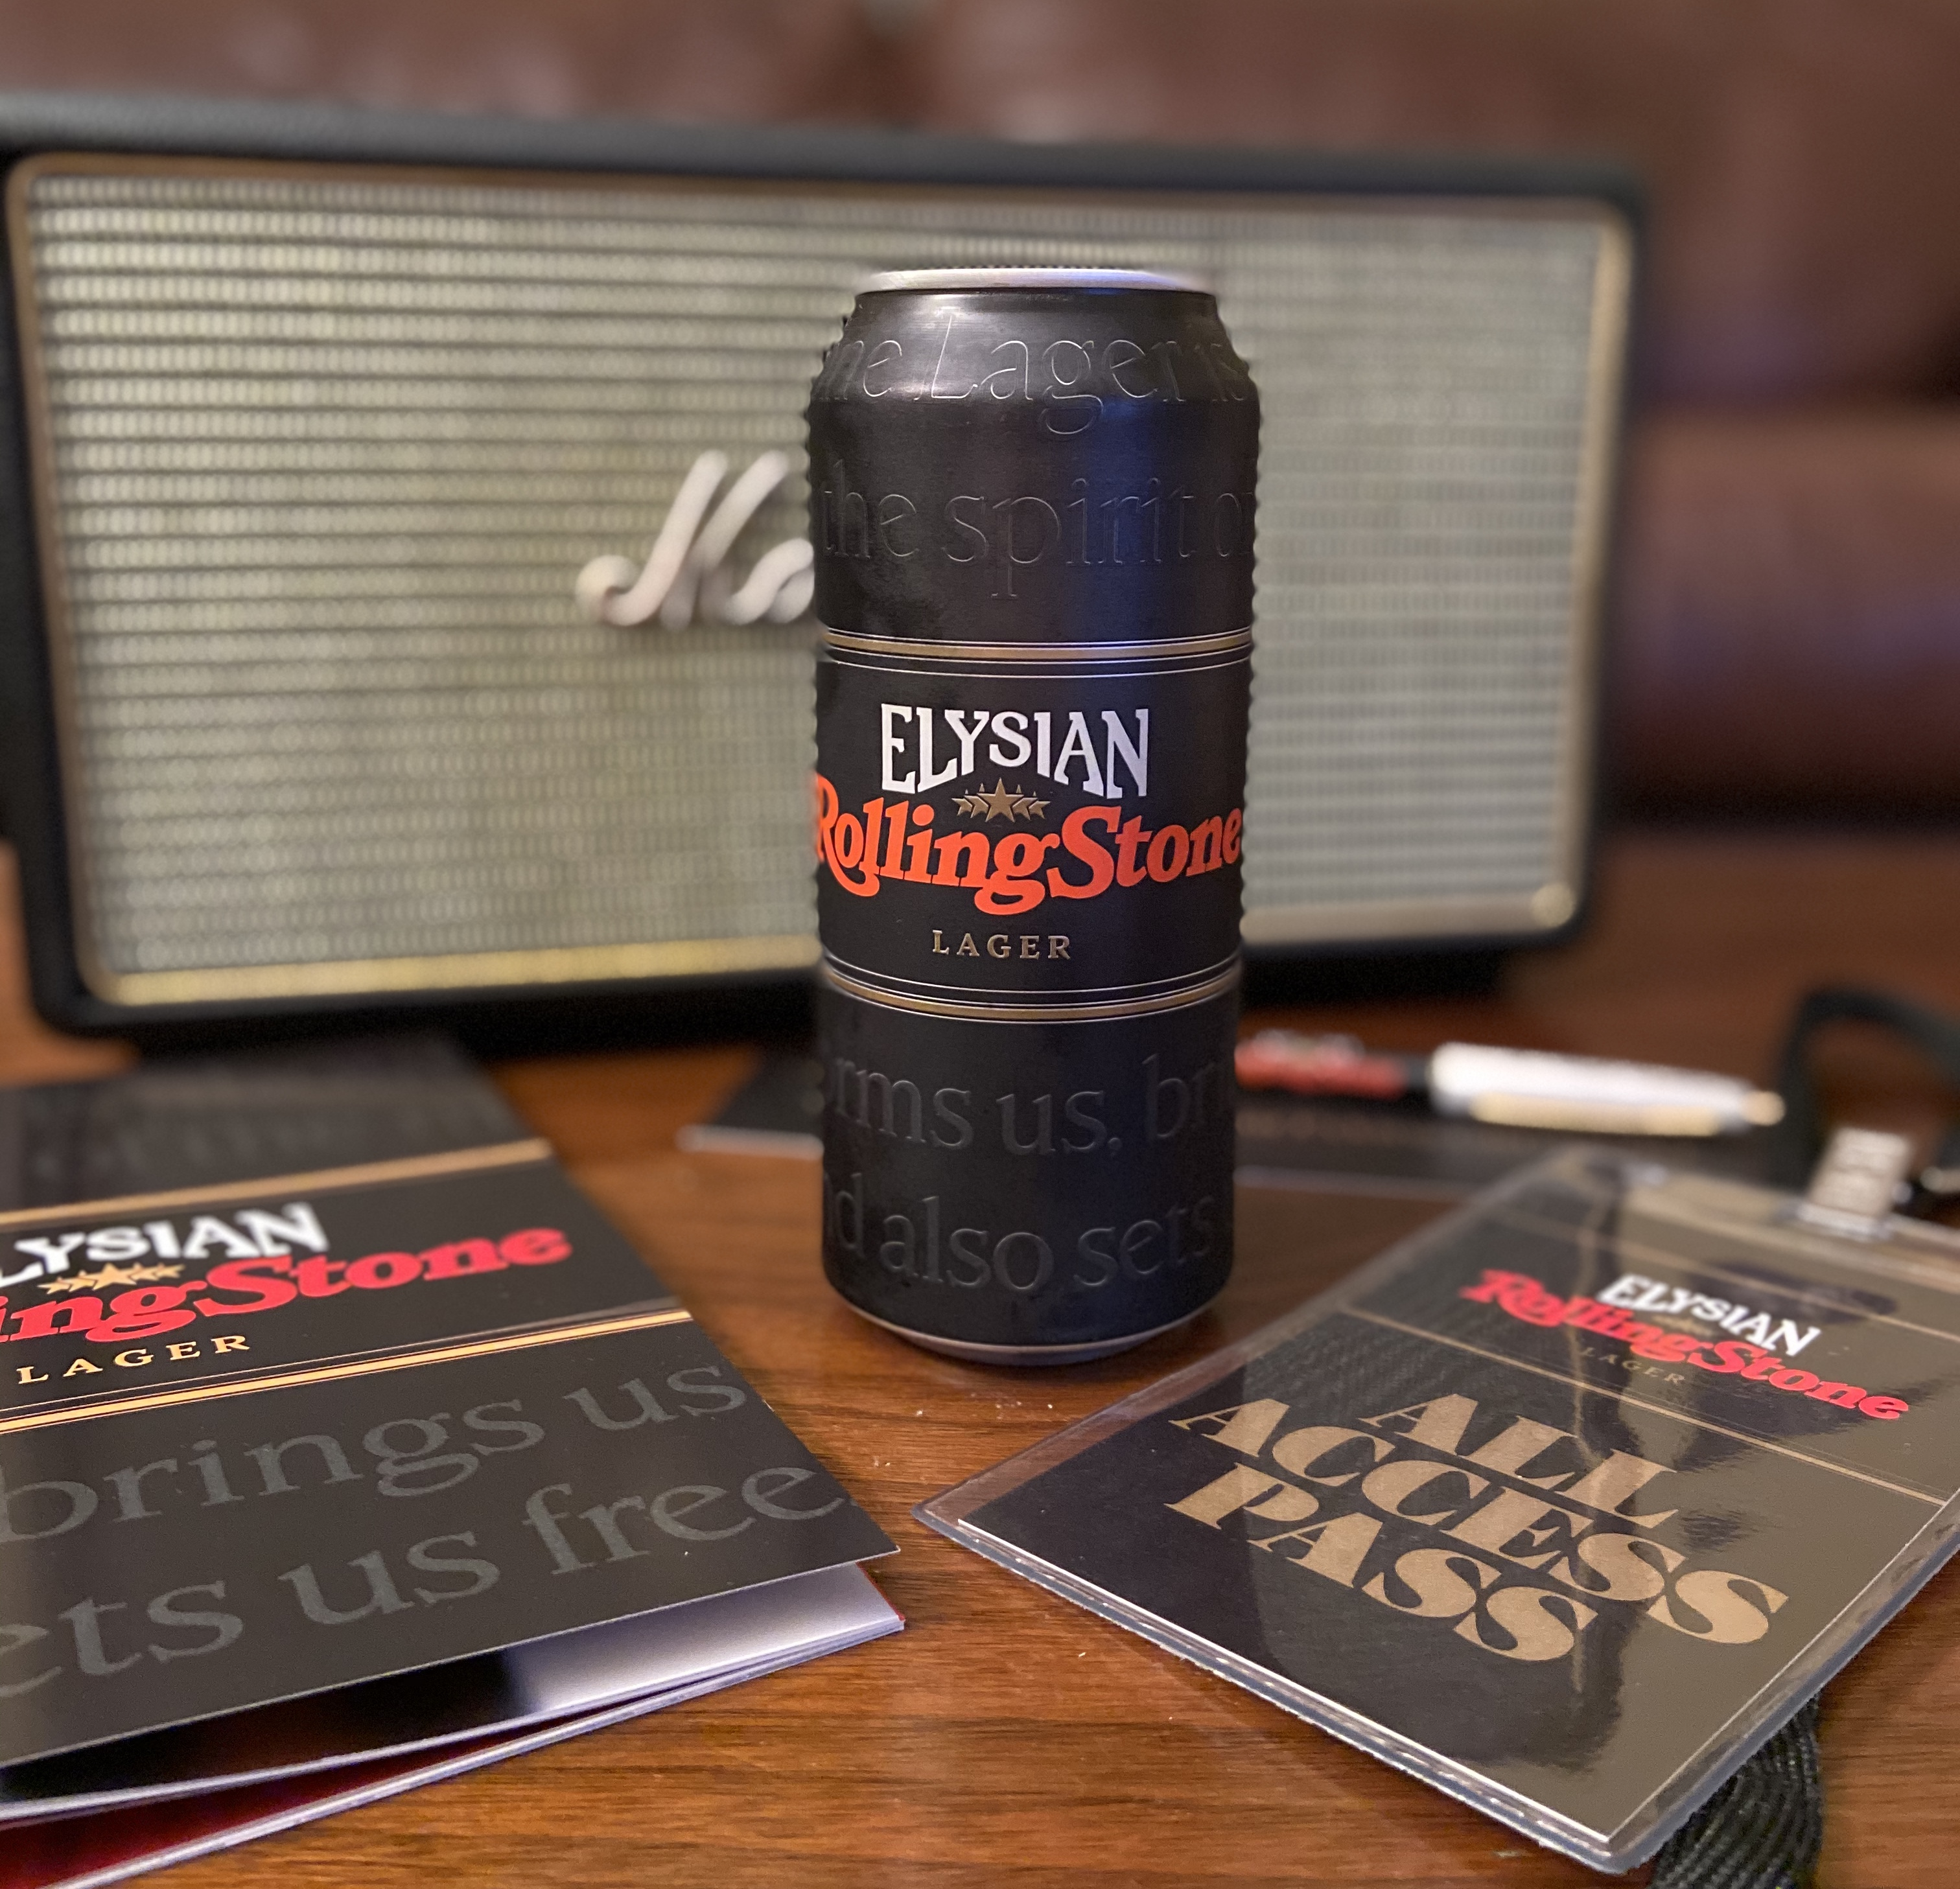 Elysian Brewing and Rolling Stone collaborate on Elysian Rolling Stone Lager.